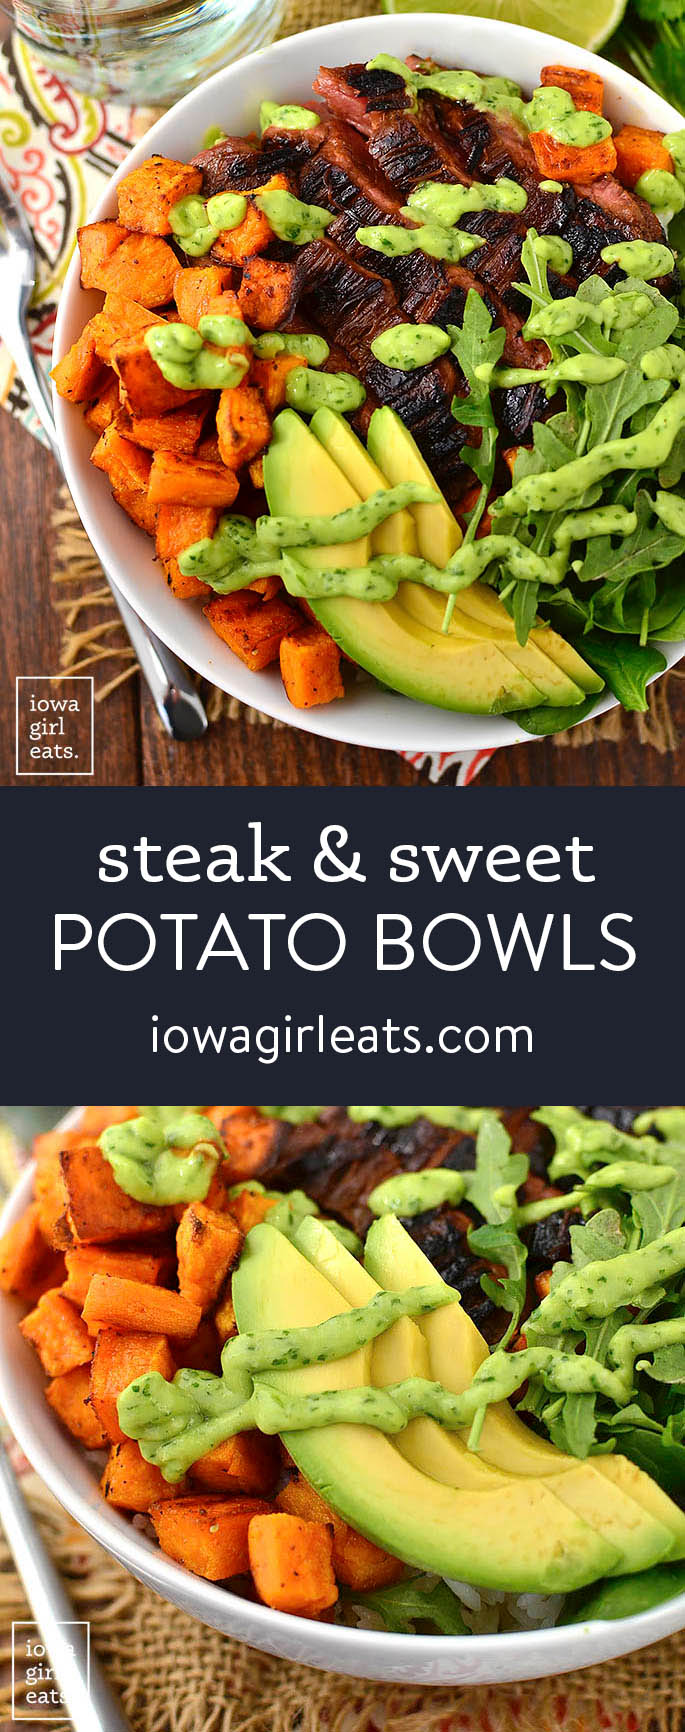 Photo collage of steak and sweet potato bowls